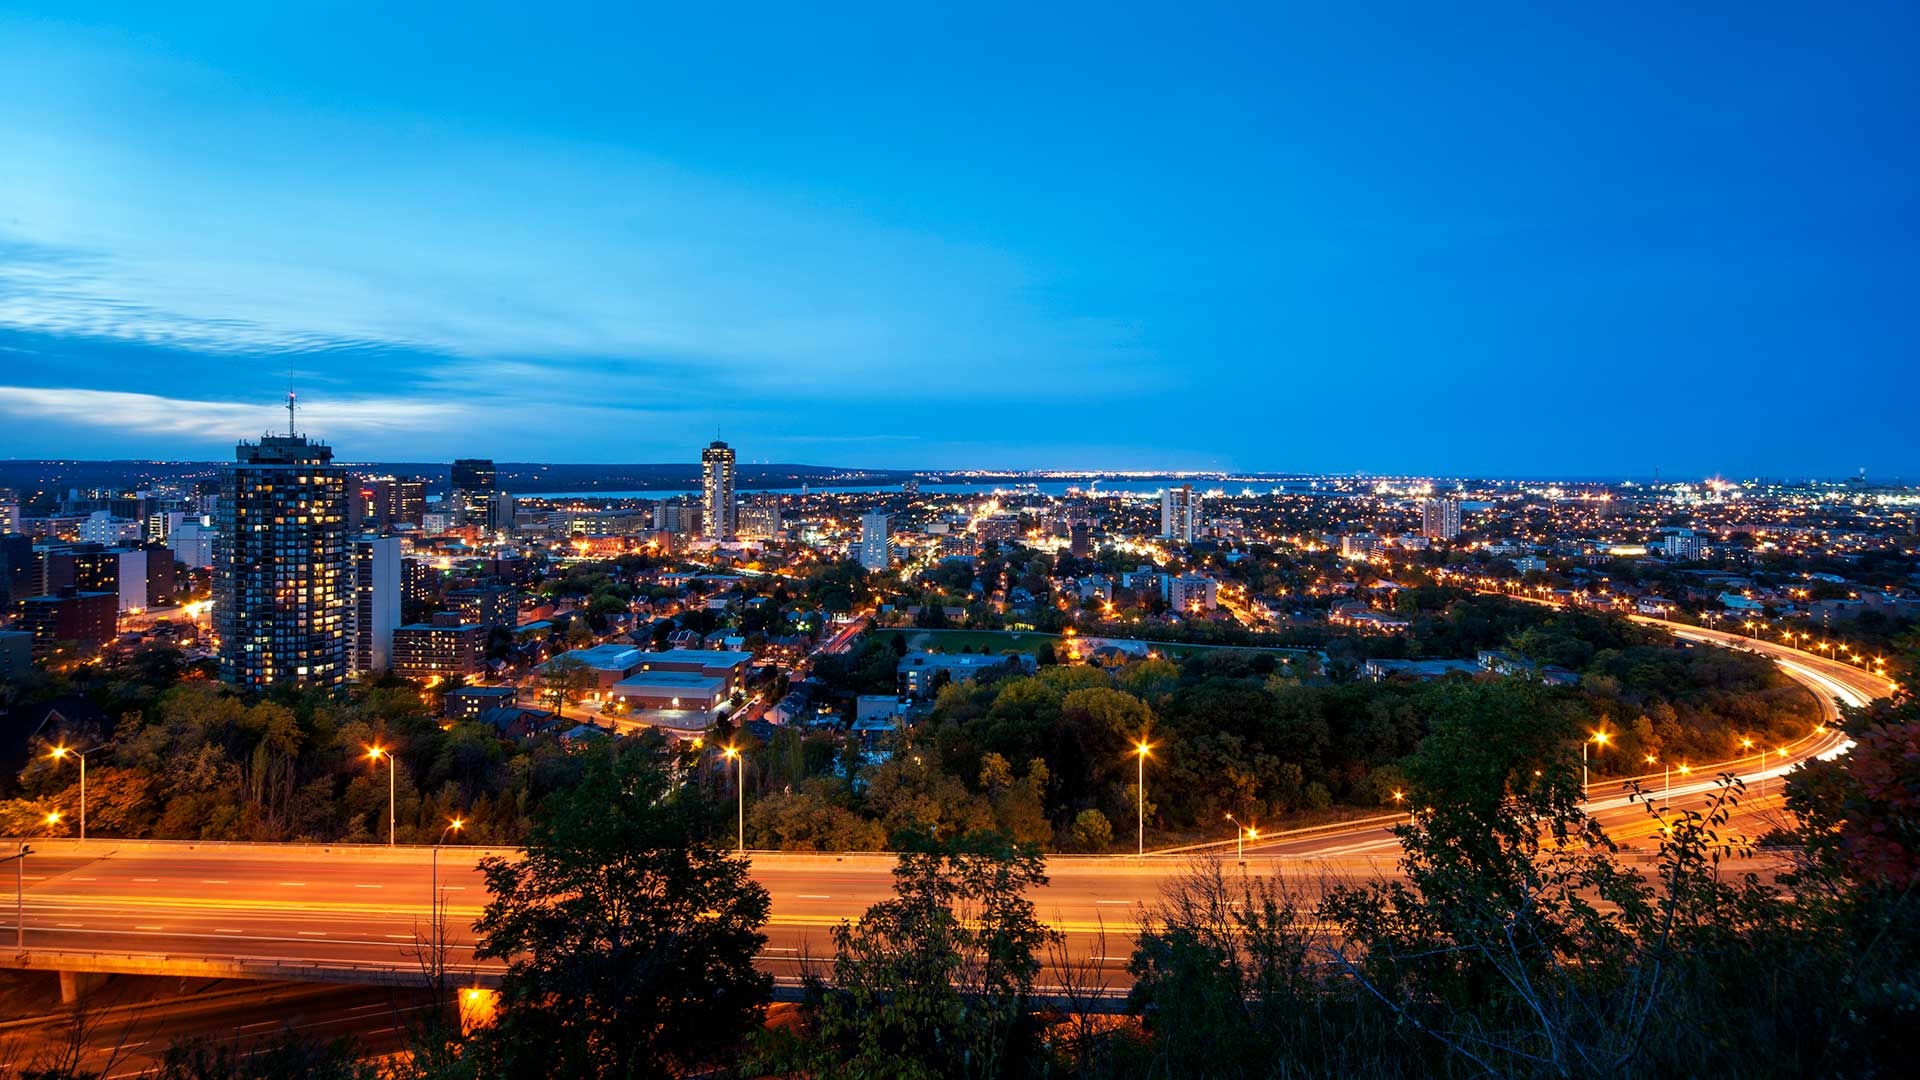 Panorama to illustrate dating in hamilton